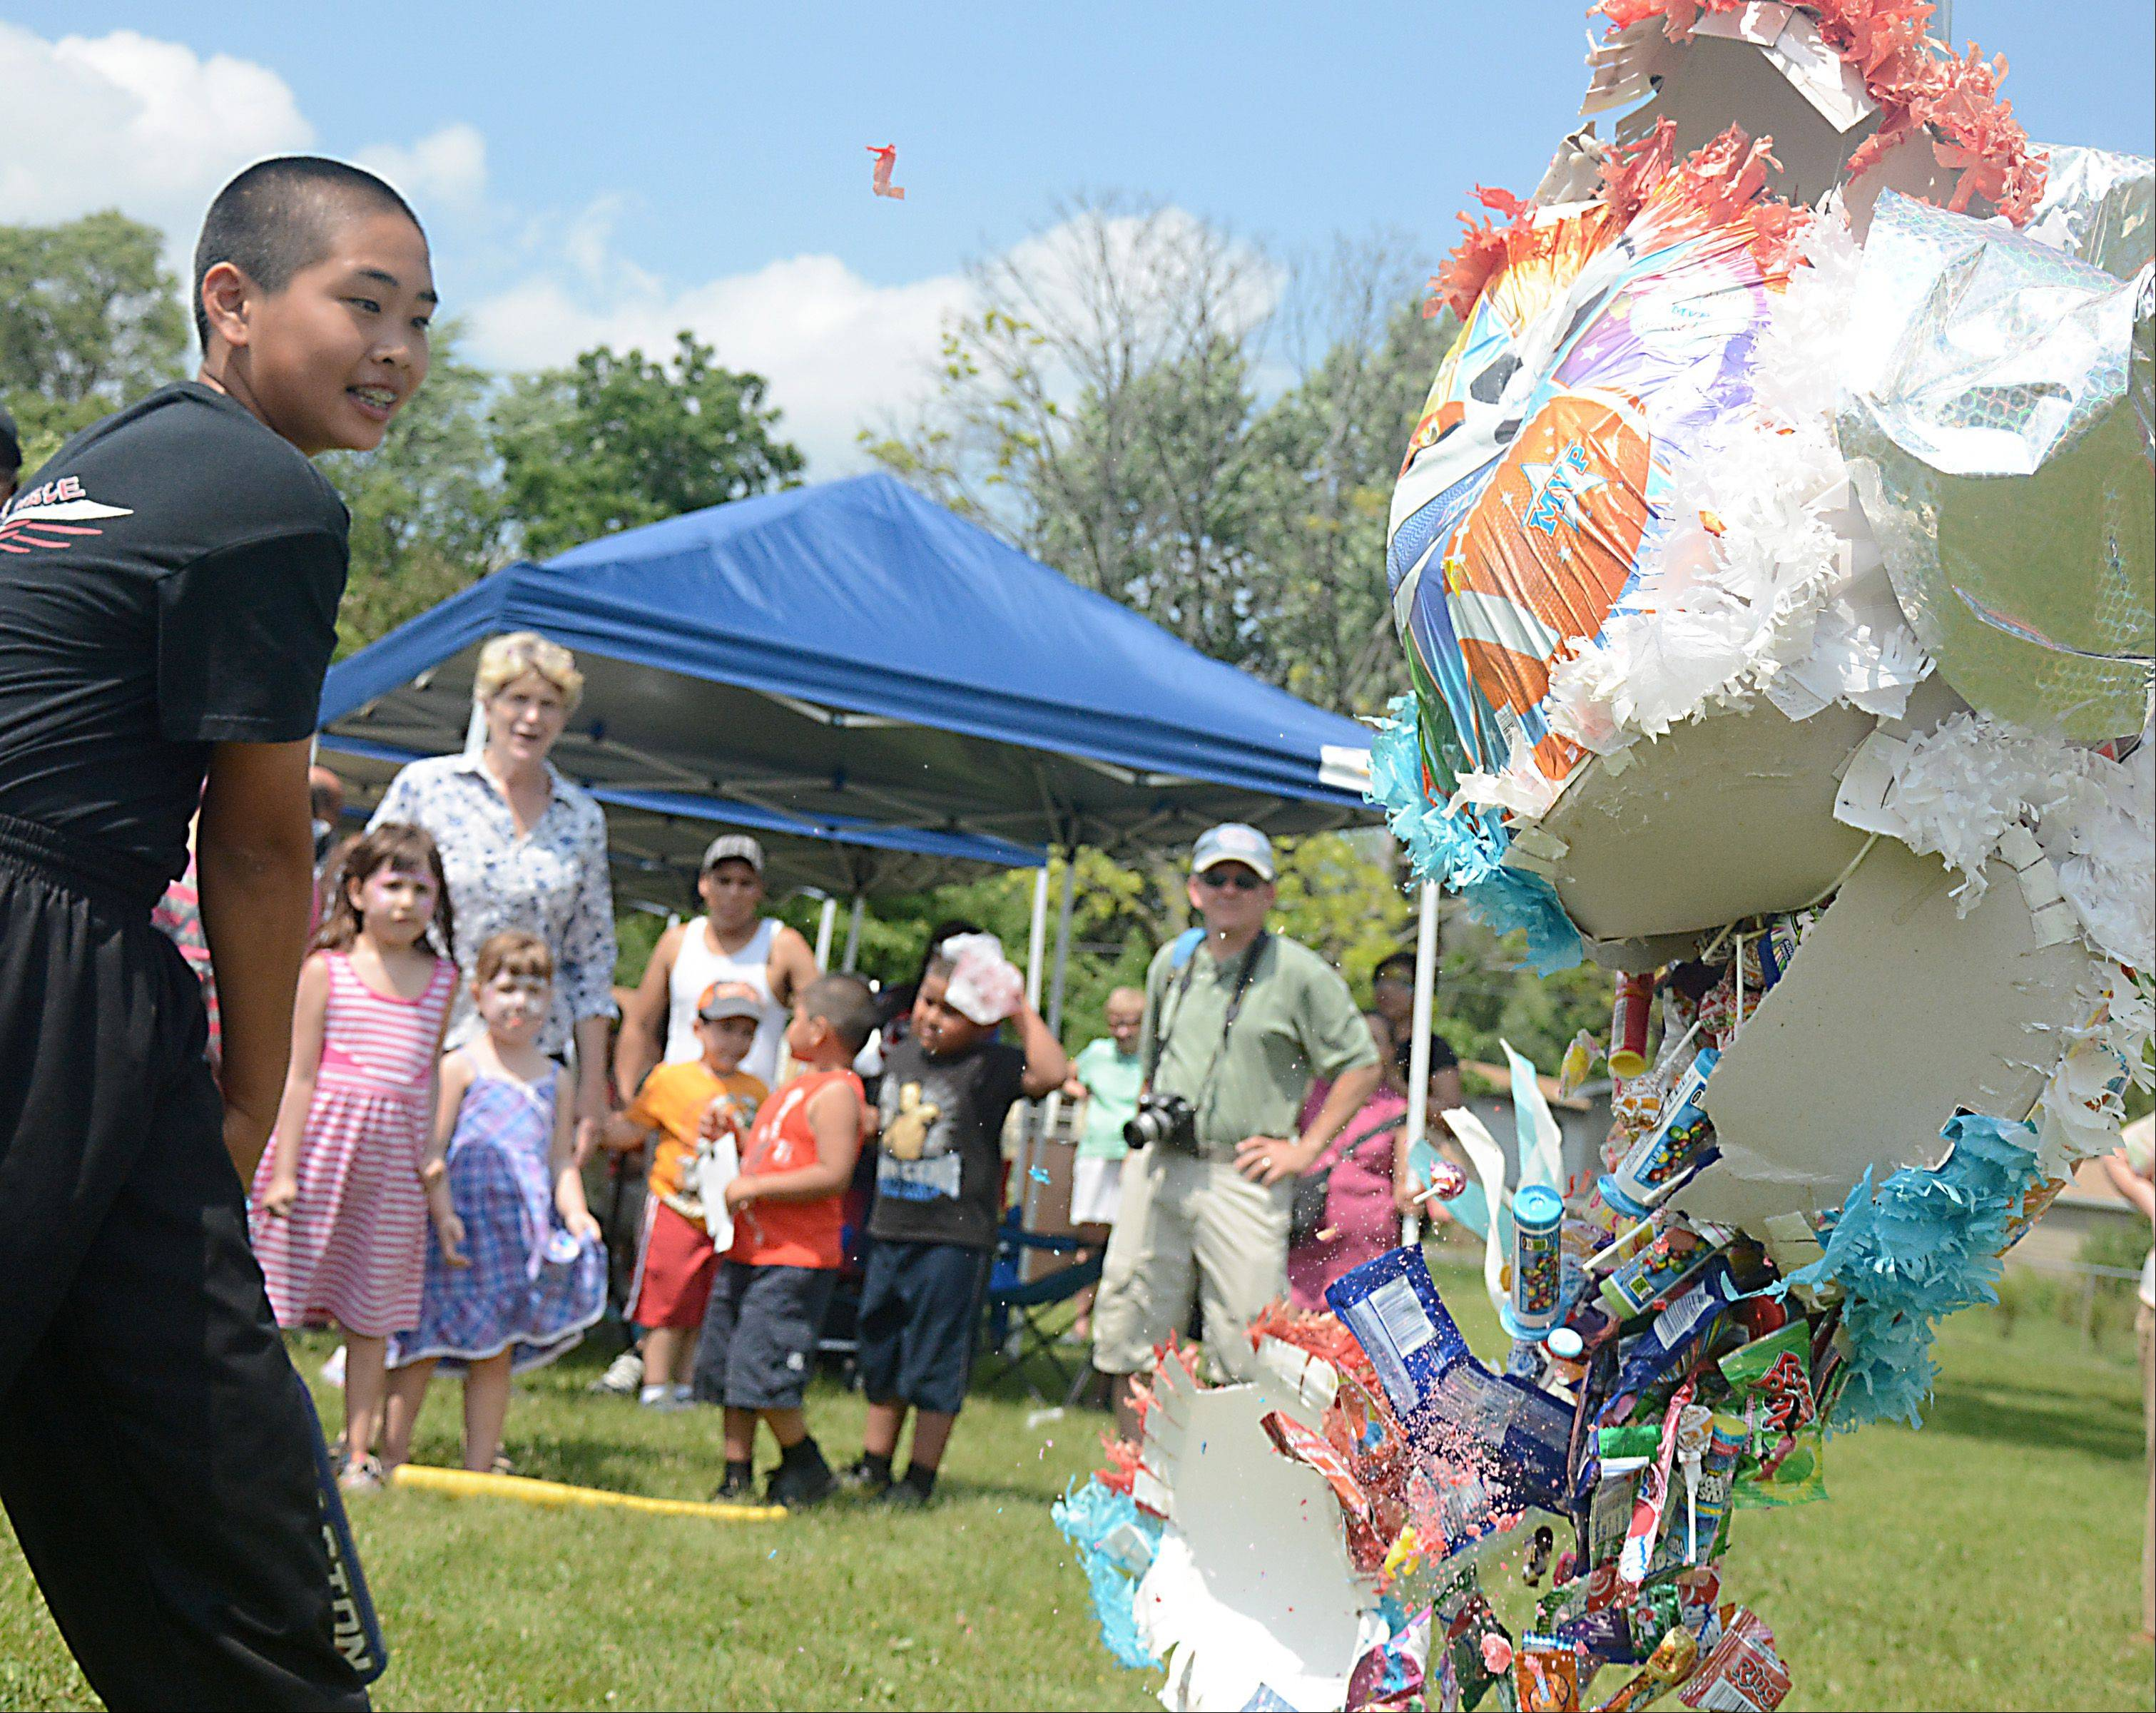 Brent Li, of Hoffman Estates, breaks open a pi�ata at the Wheeling Community Cultural Fest held at Northside Park in Wheeling Sunday.